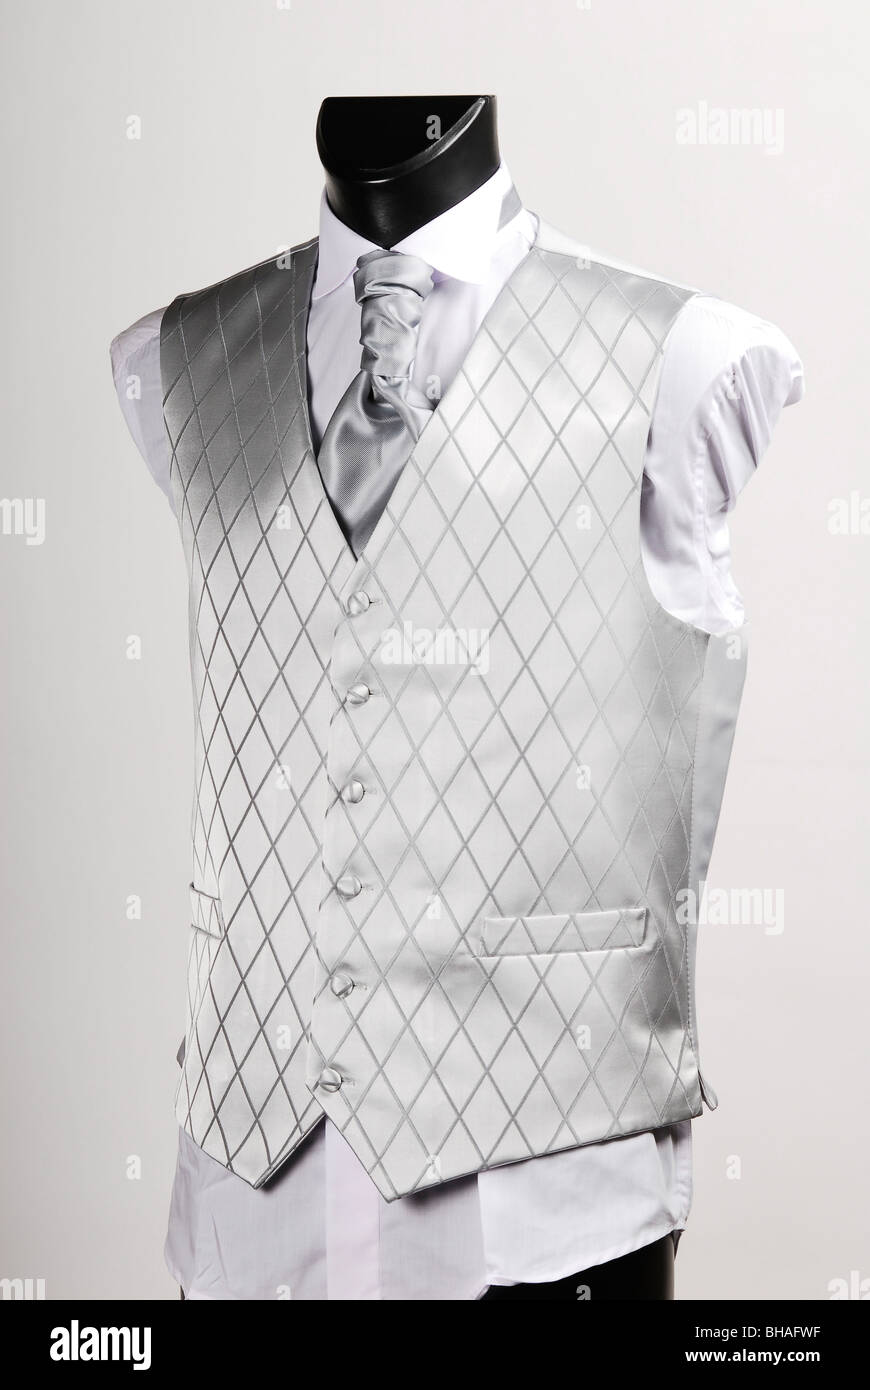 Silk Waistcoat. Mens garment worn over a shirt and under a jacket. - Stock Image